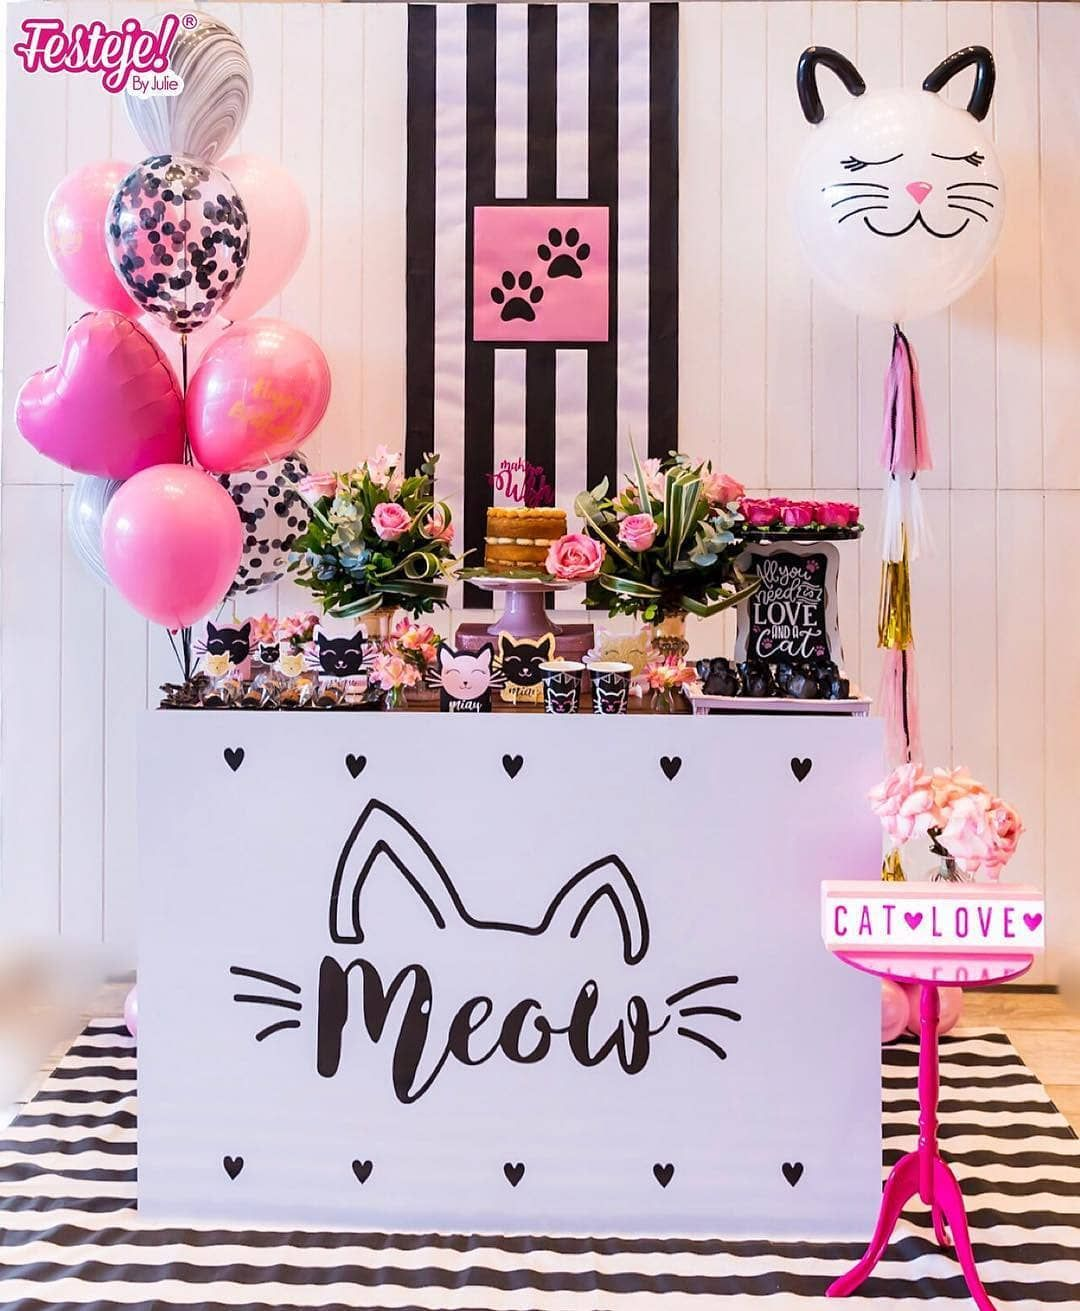 Baby Shower Ideas Baby Shower Games Baby Shower Ideas For Boys Baby Shower Decorations Baby Cat Themed Birthday Party Kitten Birthday Party Cat Birthday Party